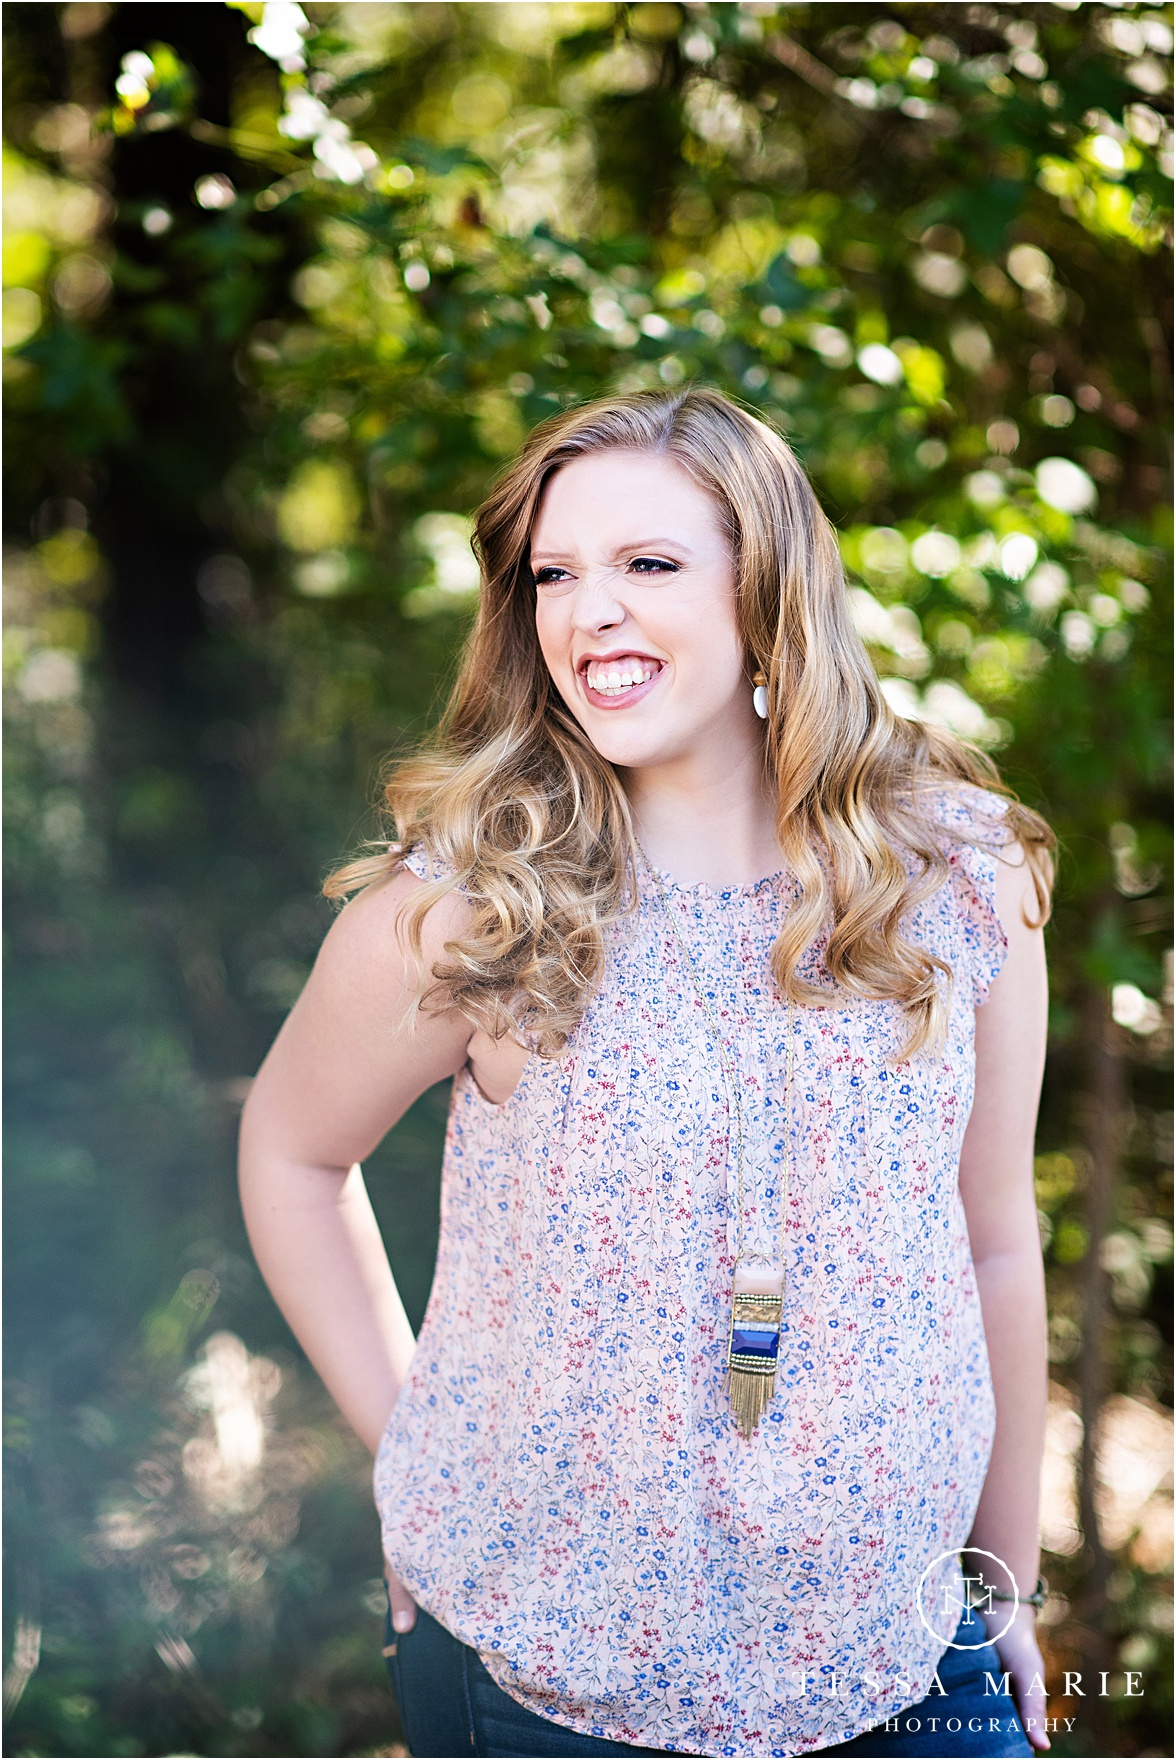 Atlanta_senior_photography_teen_girl_portraits_tessa_marie_studios_the_experience_0017.jpg